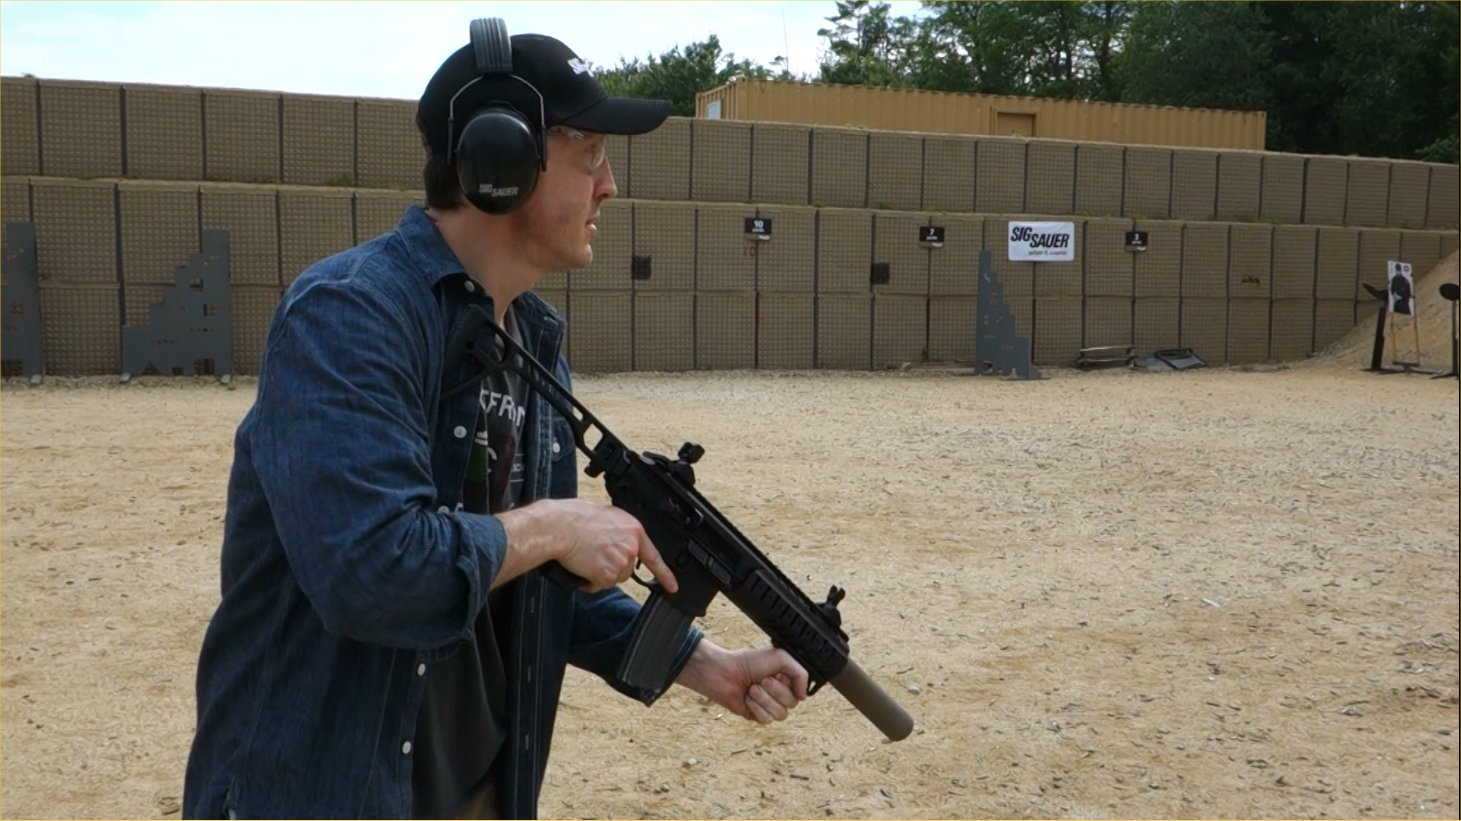 SIG SAUER SIG MCX Multi Caliber AR Assault Rifle Carbine SBR 300 Blackout 300BLK Suppressed David Crane Firing on Full Auto SIG SAUER New Media Writers Event DefenseReview.com DR 5 SIG MCX LVAW (Low Visibility Assault Weapon) Black Mamba Suppressed 300 Blackout (300BLK) Piston AR Assault SBR/PDW (Short Barreled Rifle/Personal Defense Weapon) Fired on Full Auto and Semi Auto with Subsonic and Supersonic Ammo During SIG SAUER New Media Writers Event (Video!)